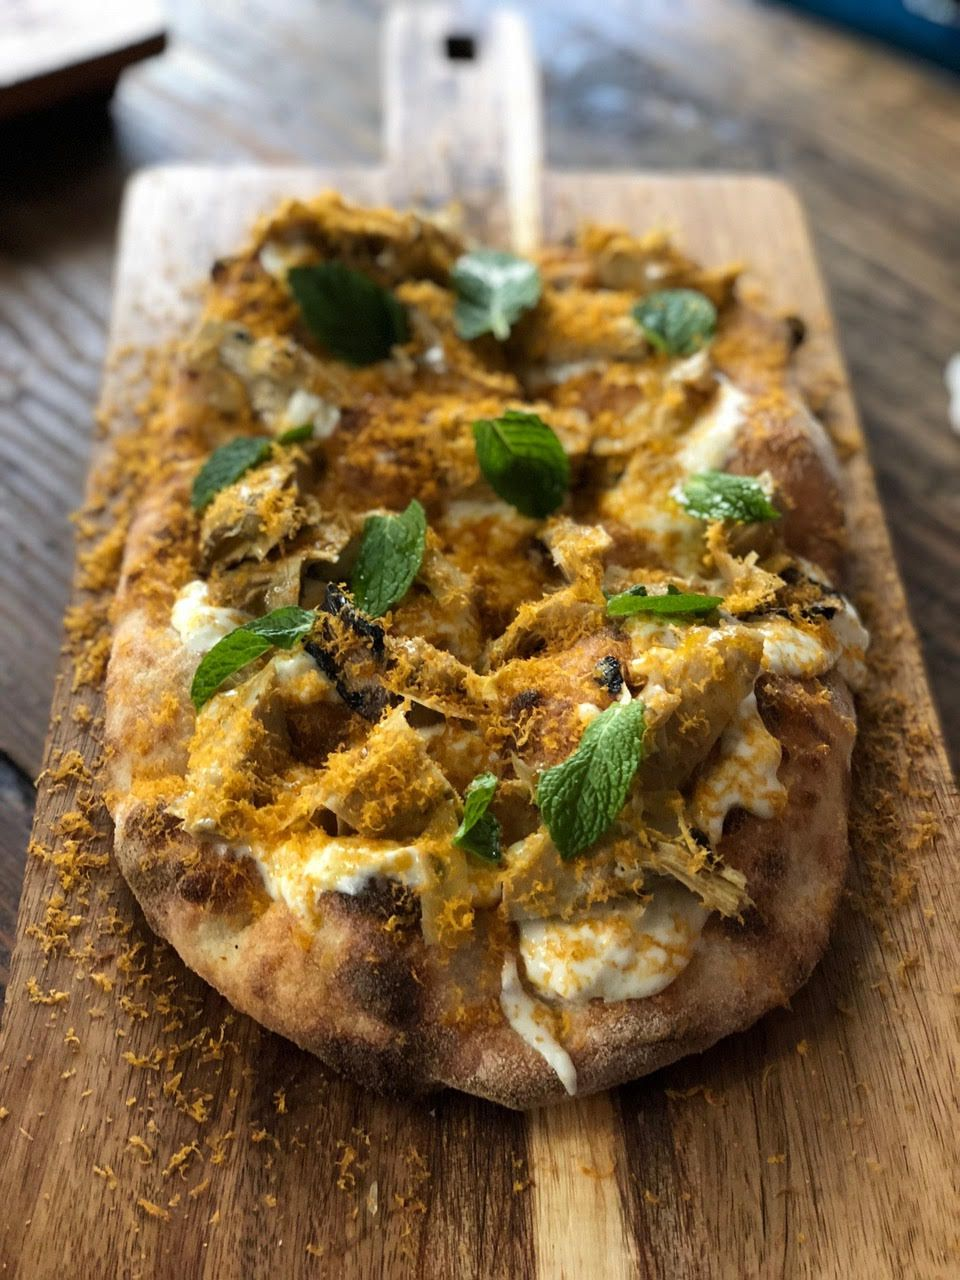 A picture of a flatbread from Montesacro